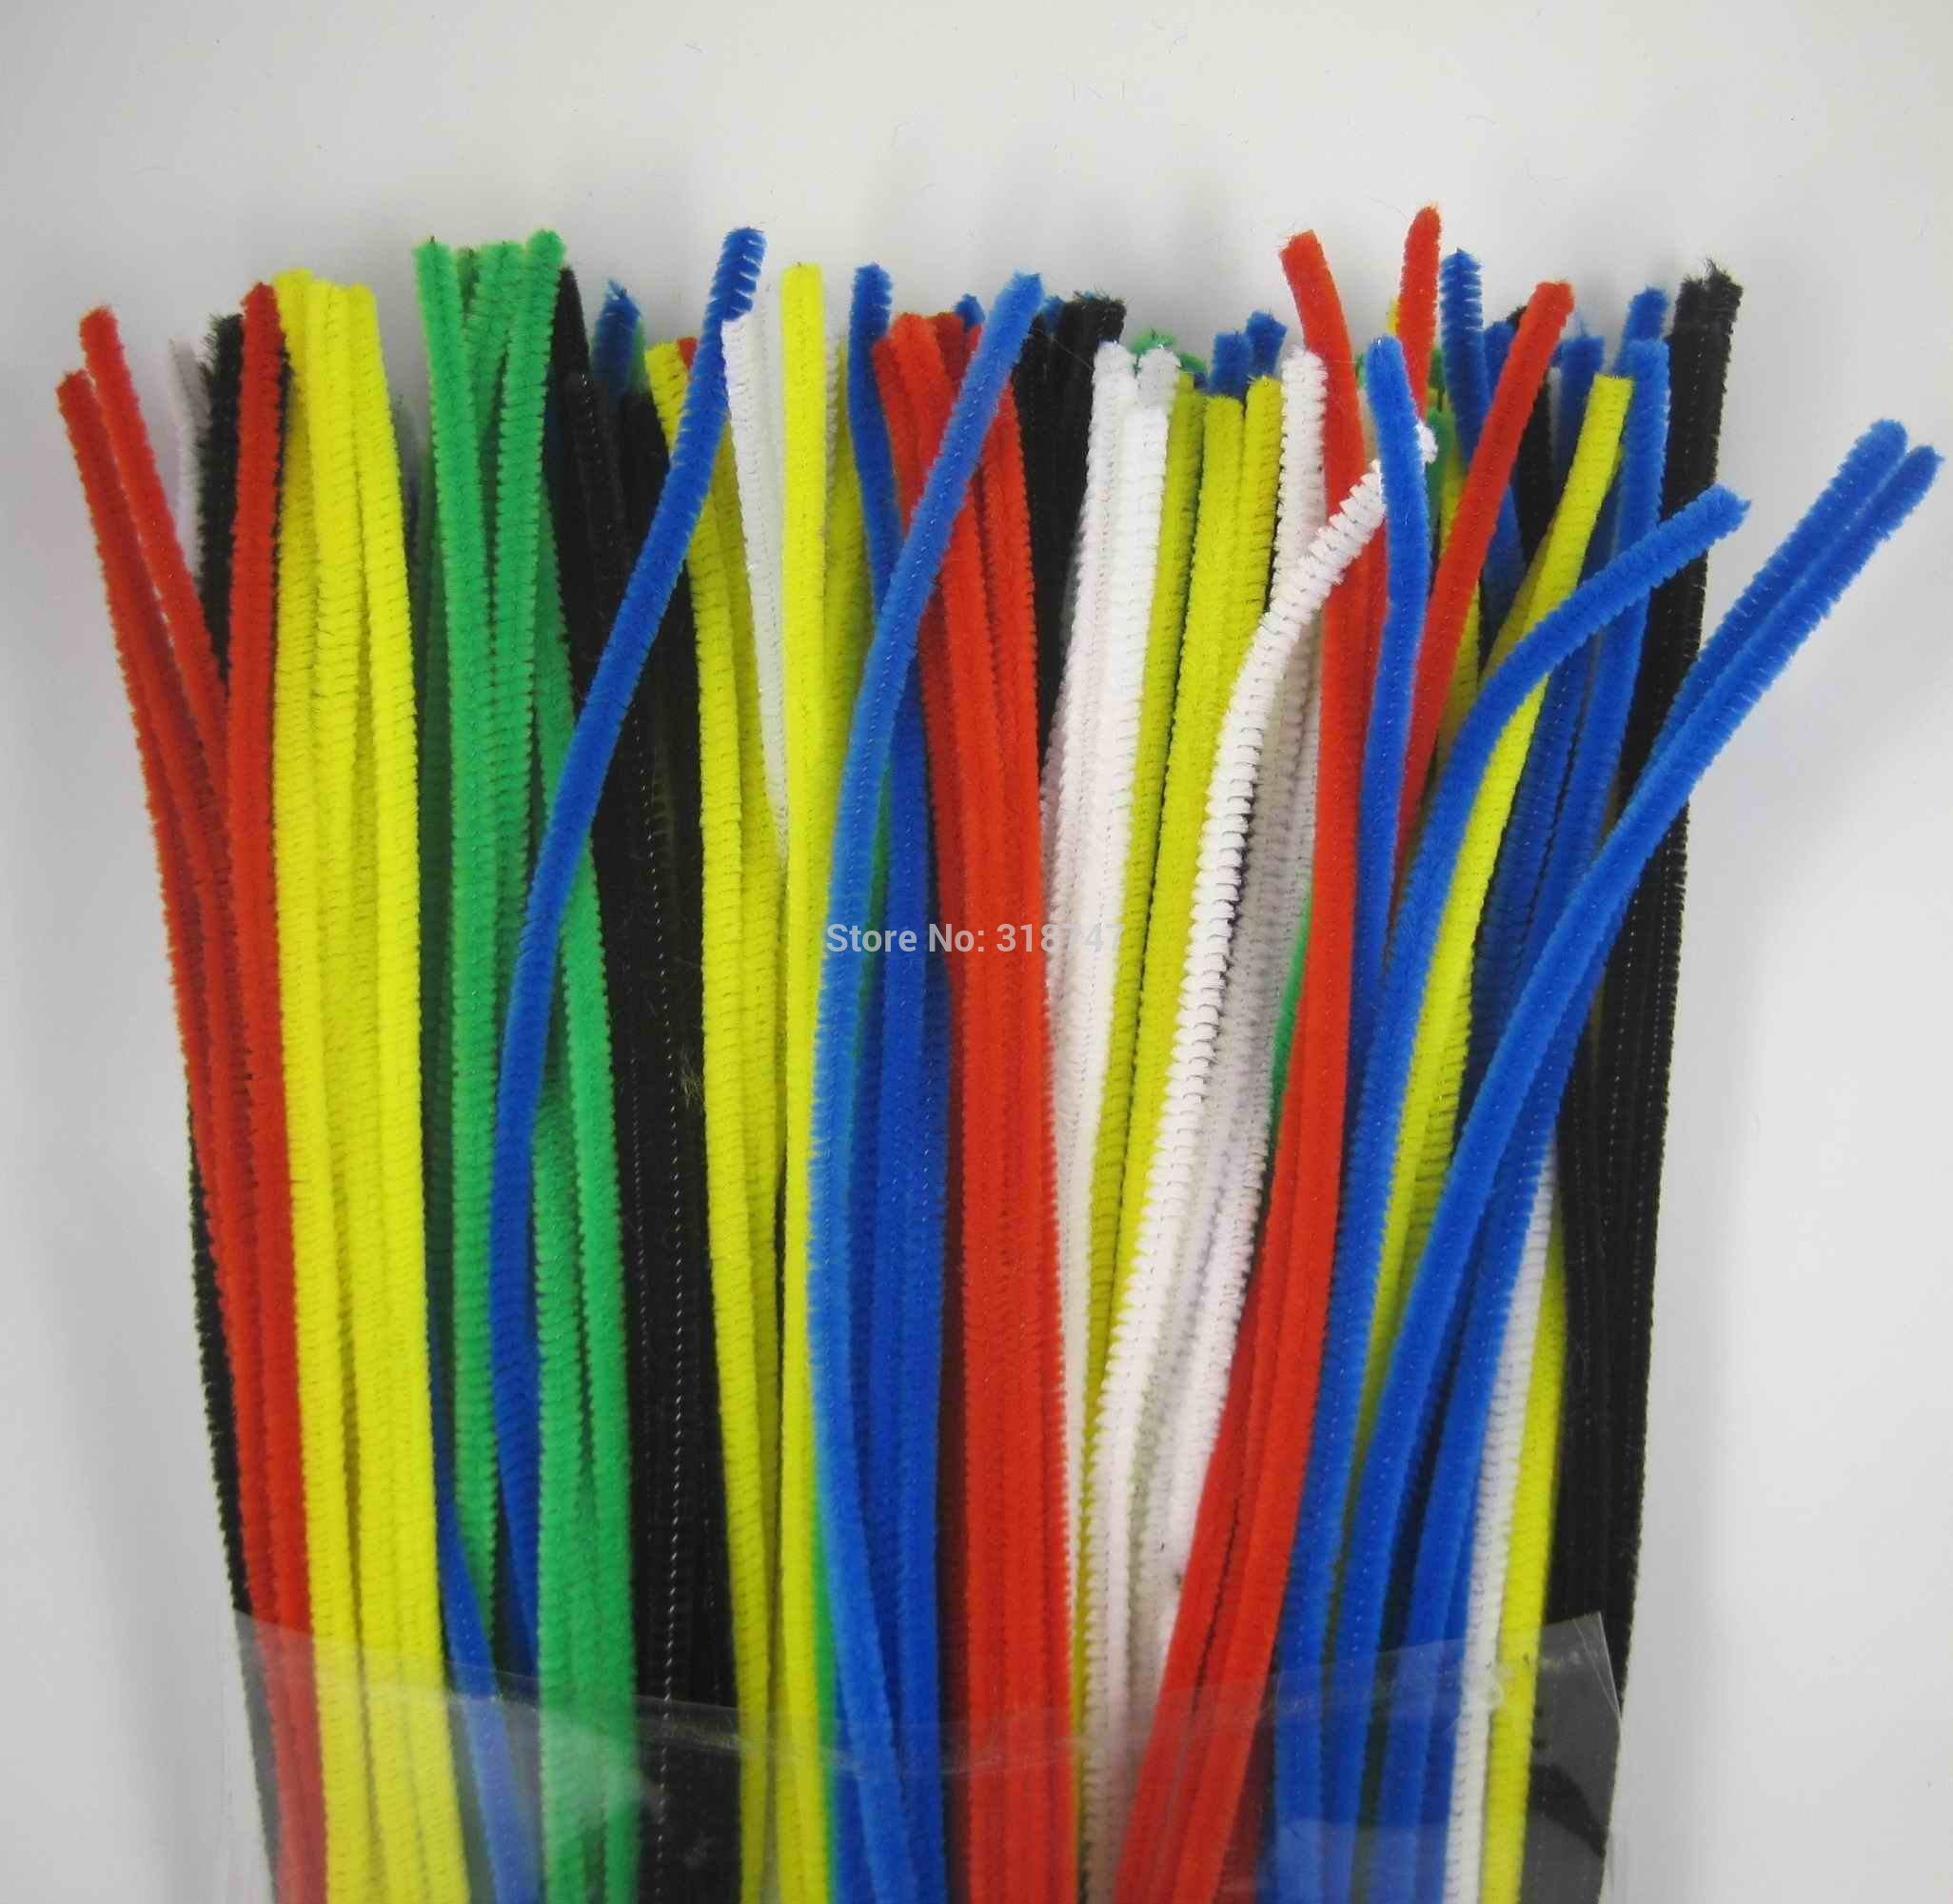 Pipe cleaners arts and crafts - Lucia Craft 12 X 6mm 100pcs Pack Mix Color Chenille Stems Diy Art Supplies